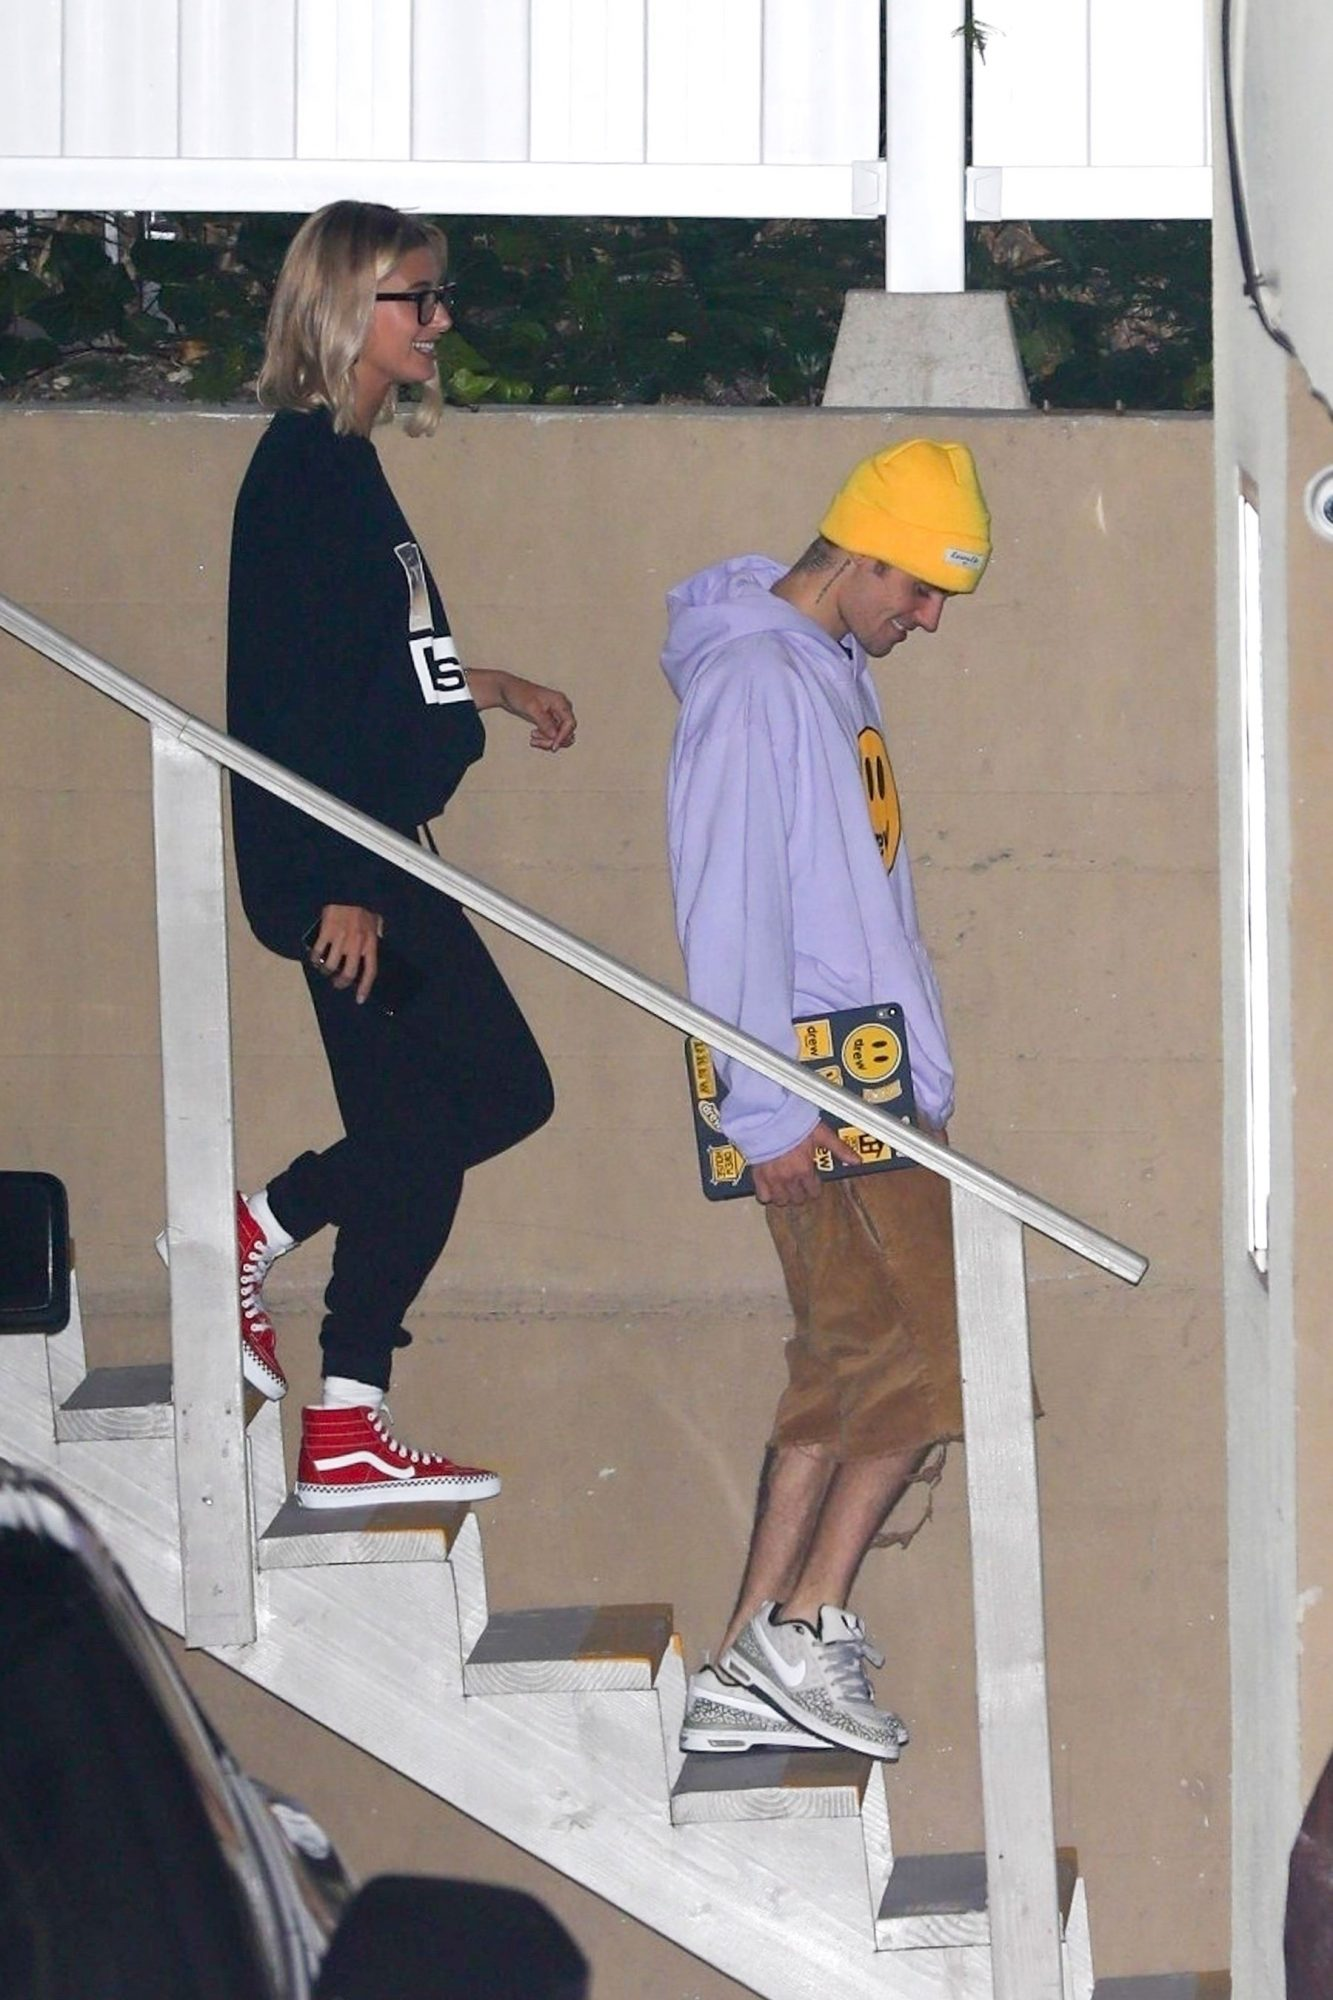 Justin Bieber and Hailey Baldwin-Bieber leave after a Wednesday church service in LA